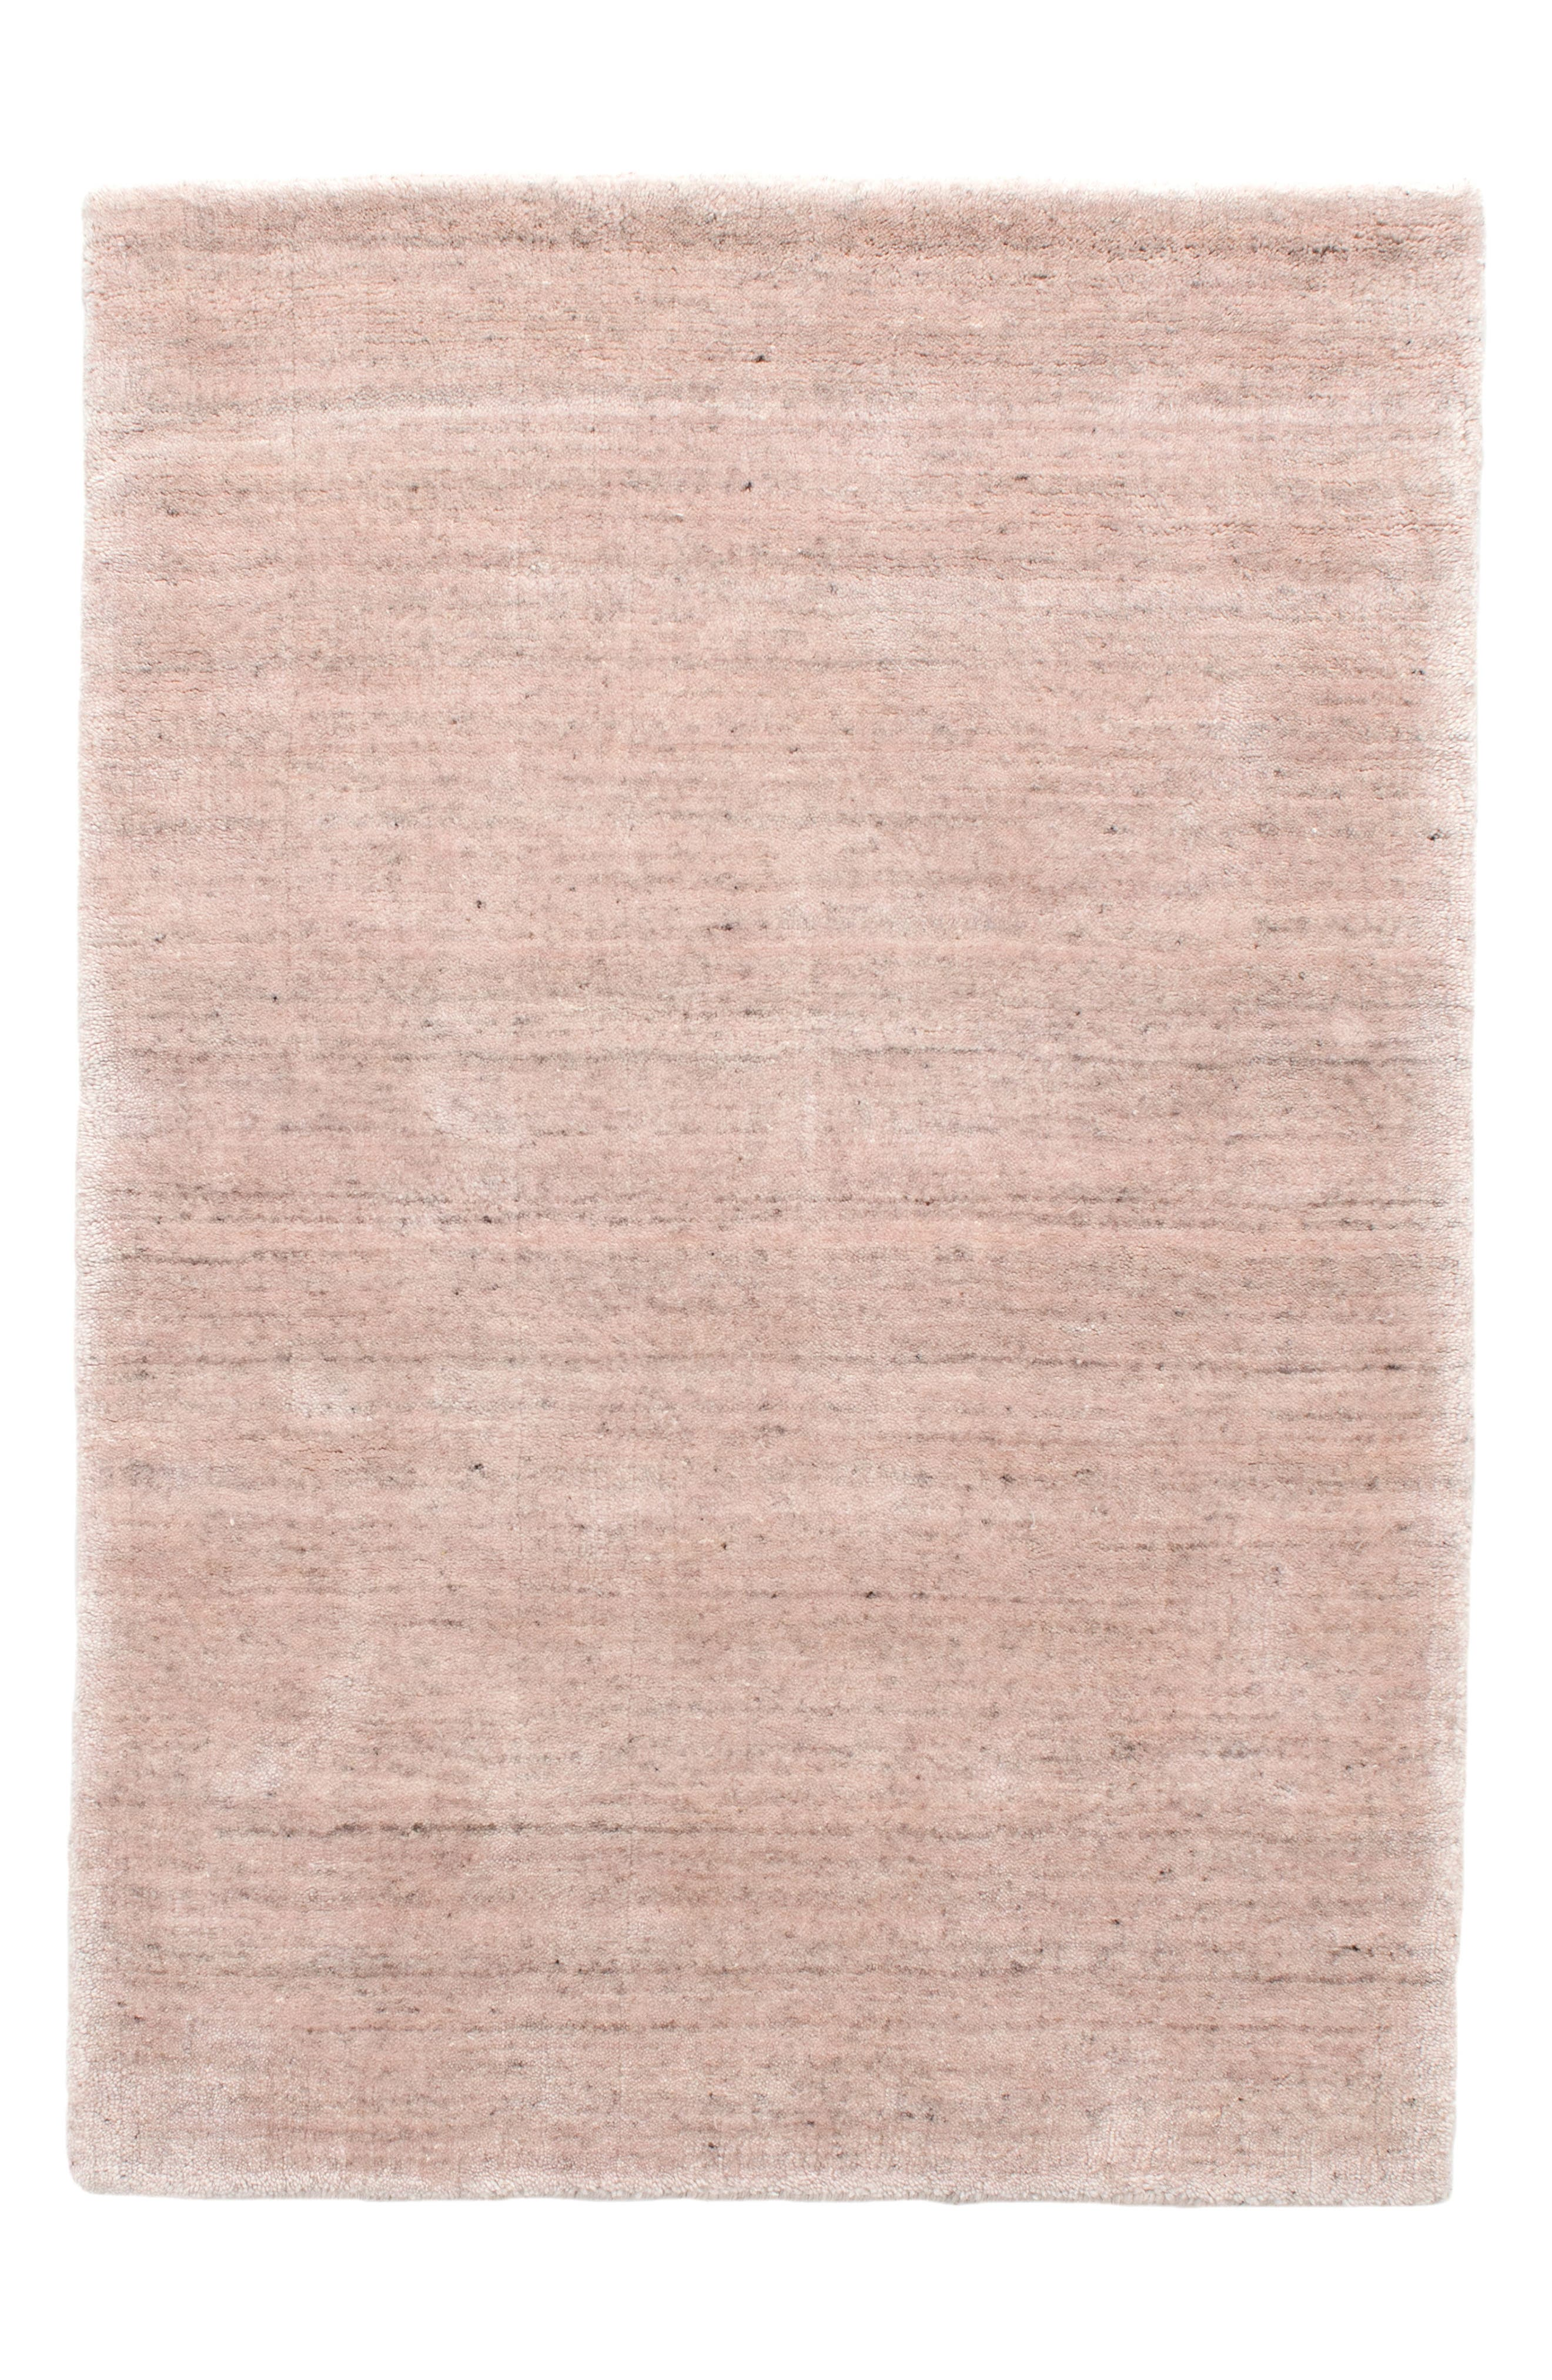 Icelandia Slipper Hand Knotted Rug,                         Main,                         color, Pink